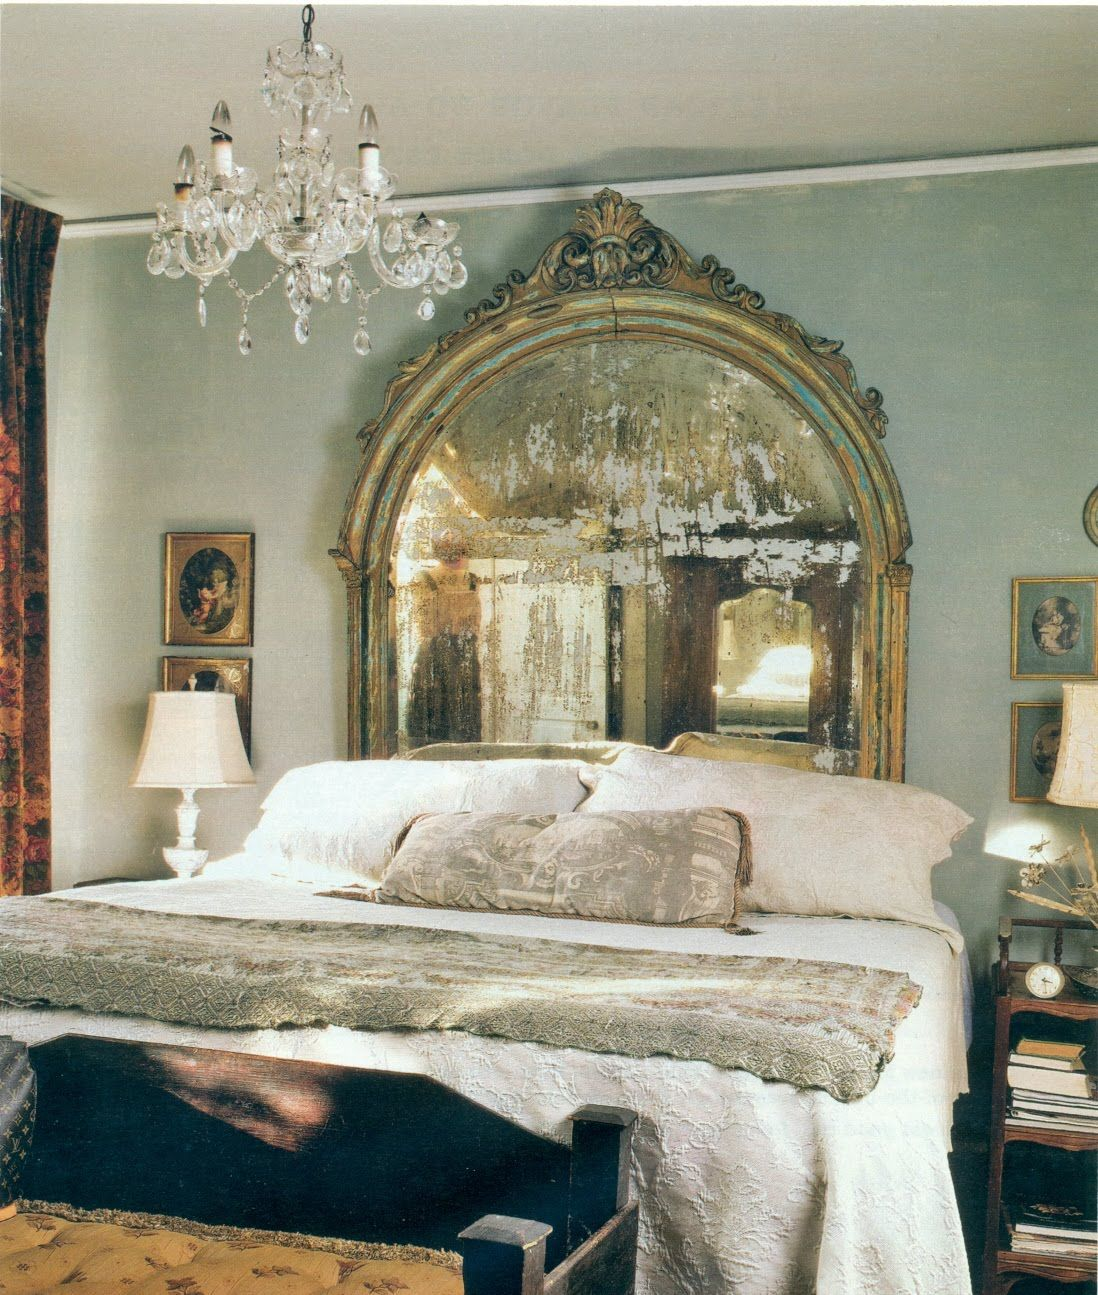 not only the mirror headboard but the walls and color!